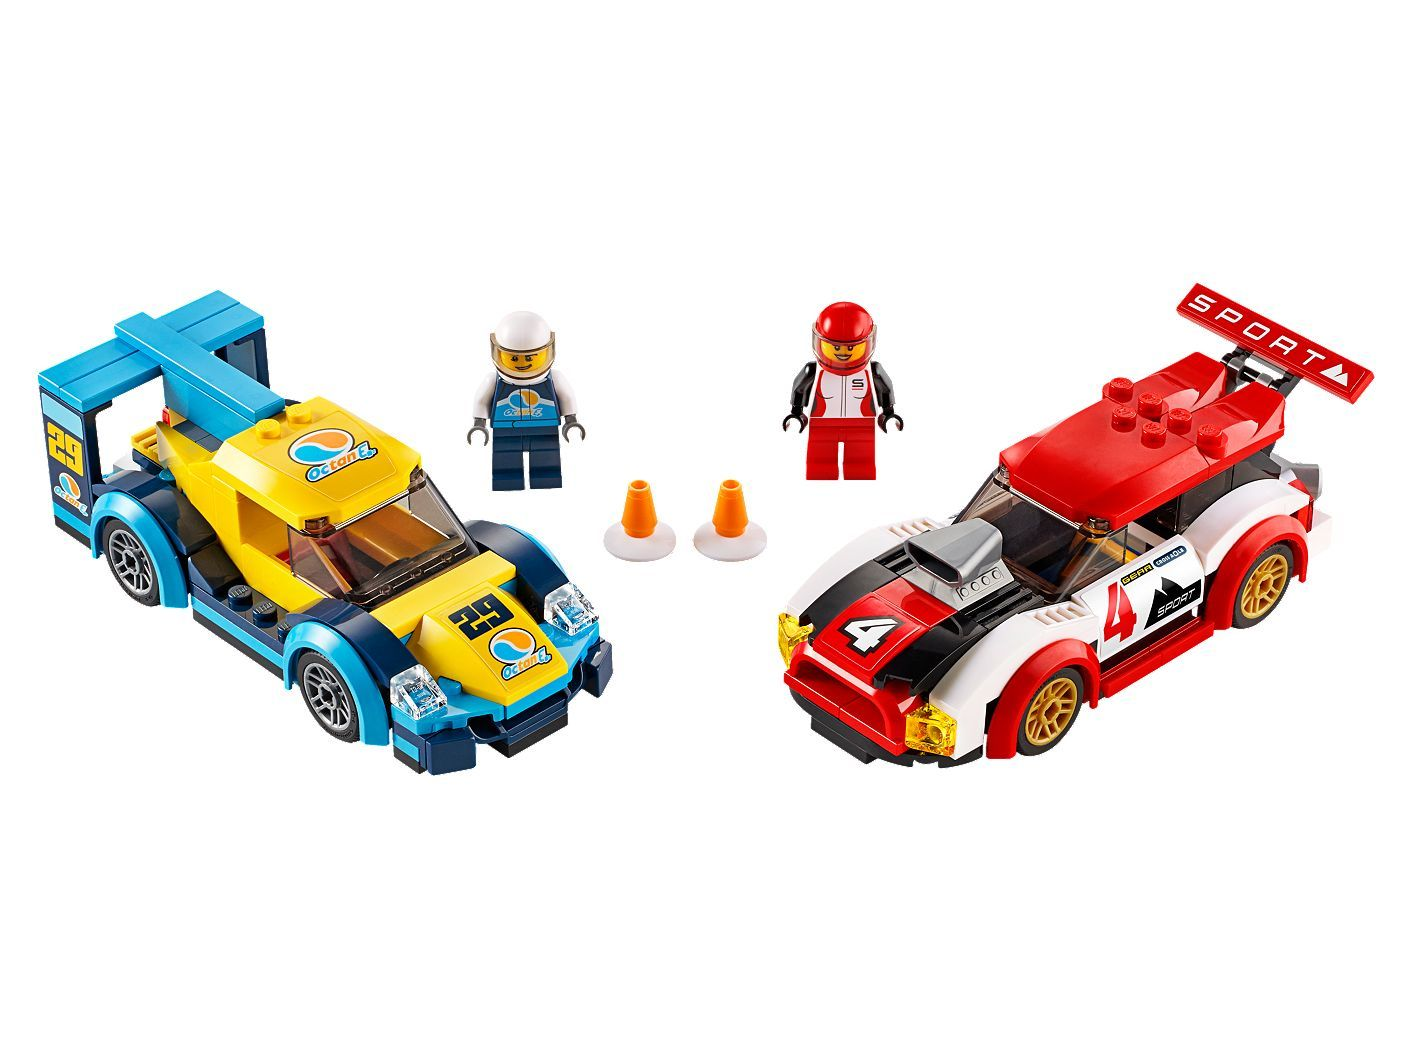 Racing Cars 60256 City Buy online at the Official LEGO